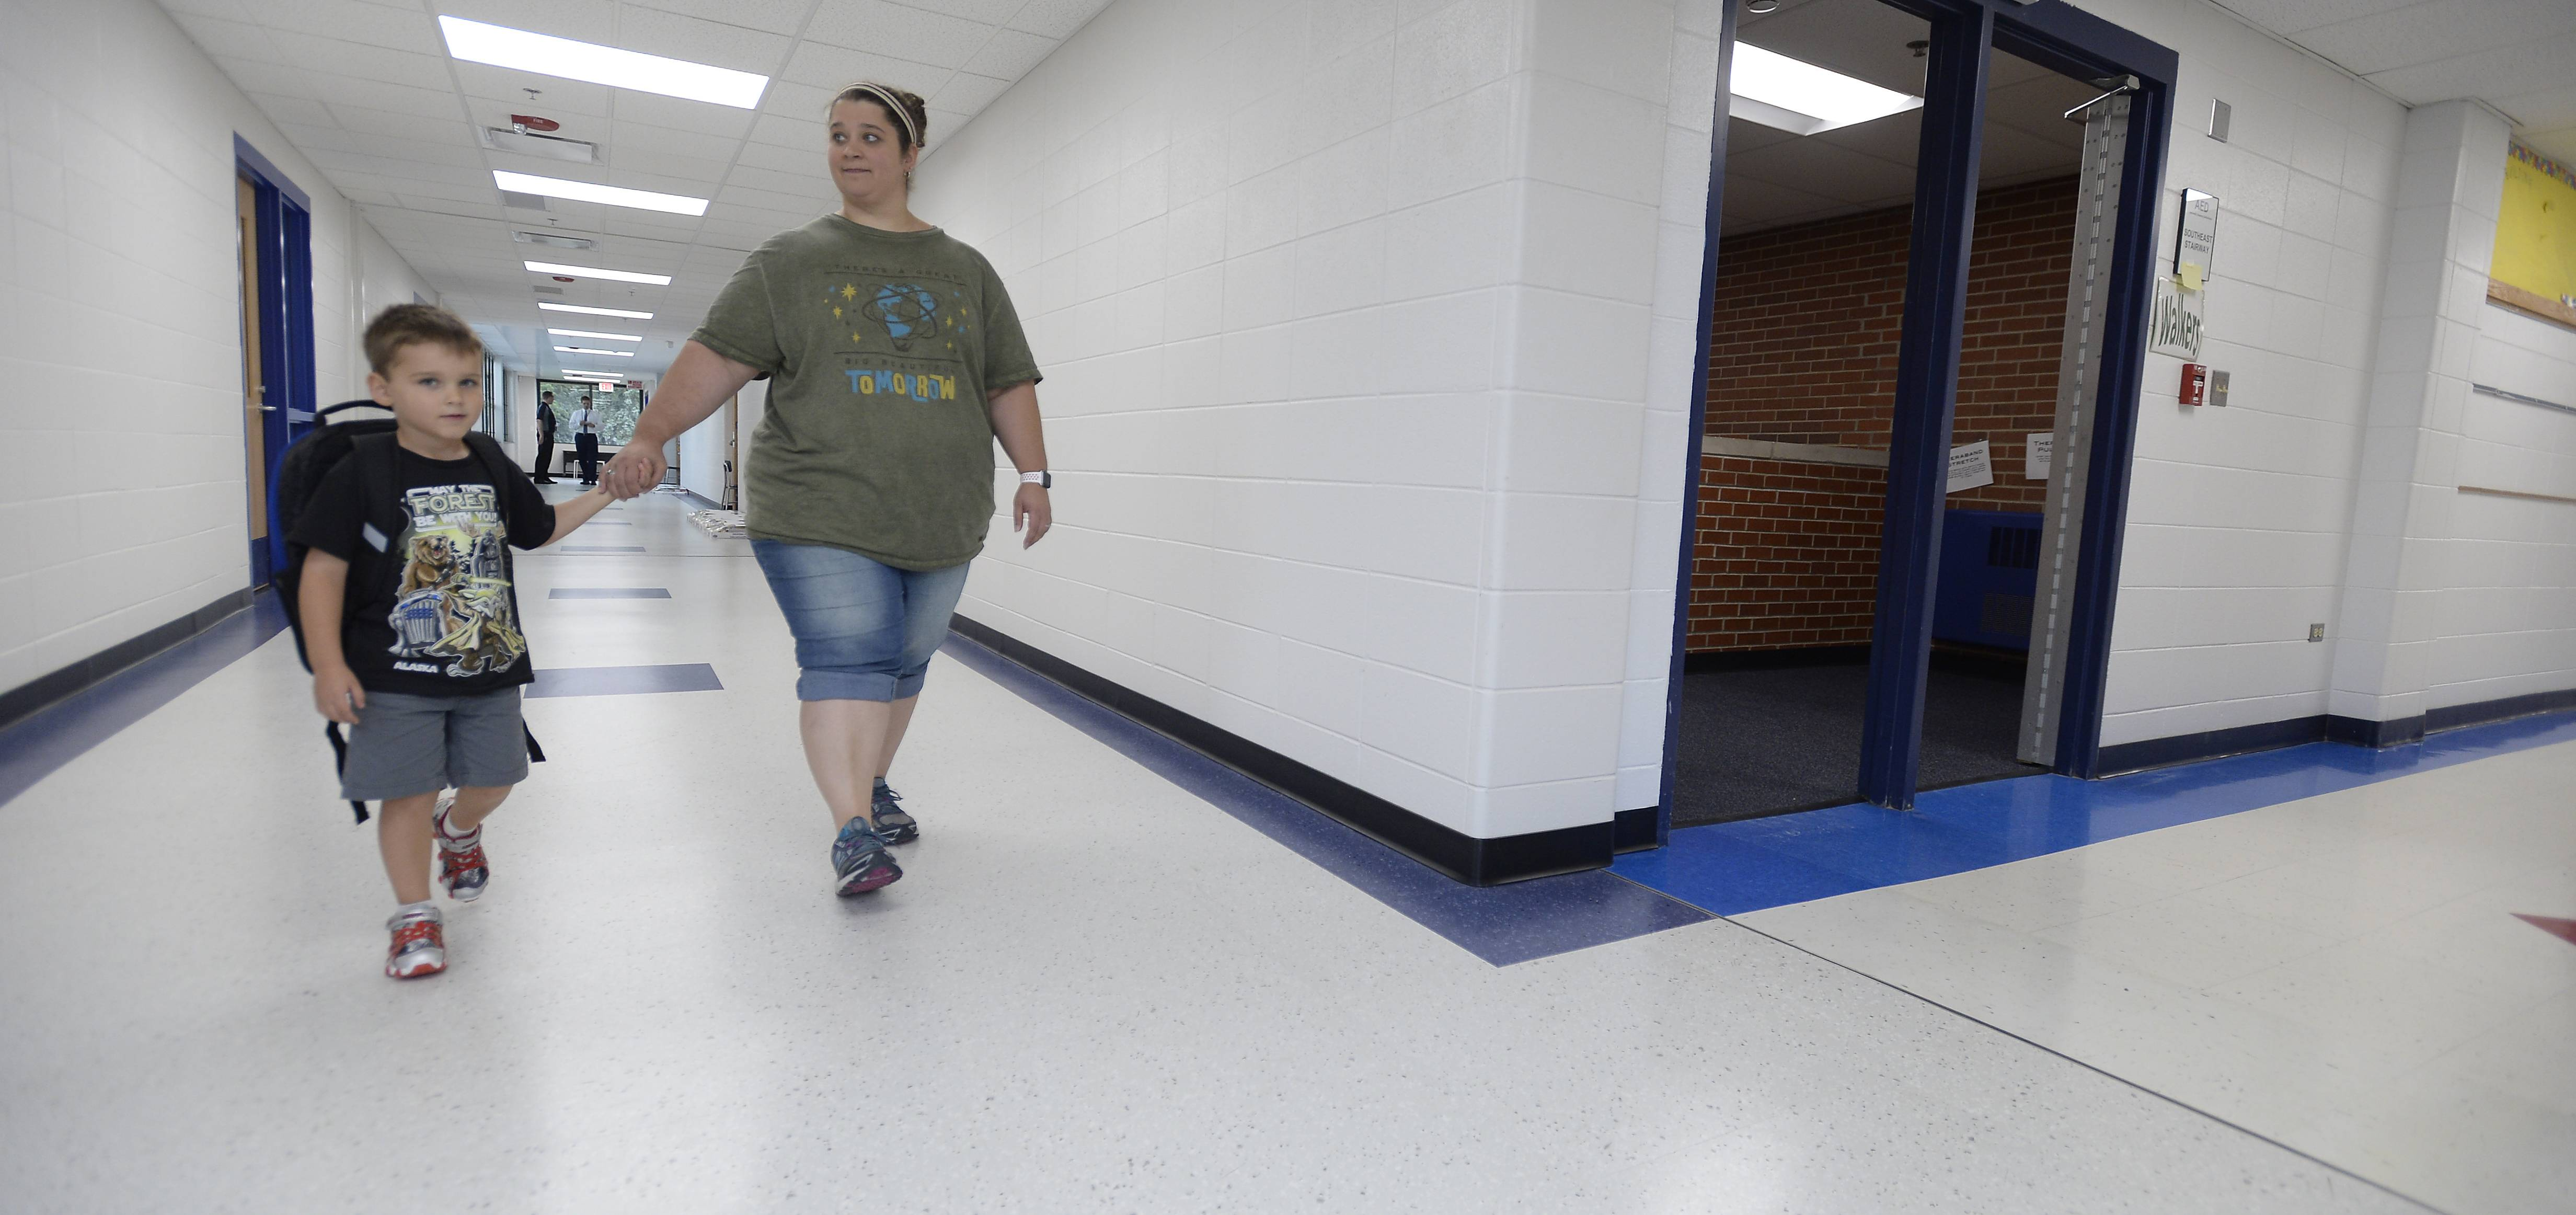 Amanda Loch and her son Evan, 4, explore the 8,280-square-foot addition of Greenbrier Elementary School in Arlington Heights, where the old building to the right intersects with the new on the left.